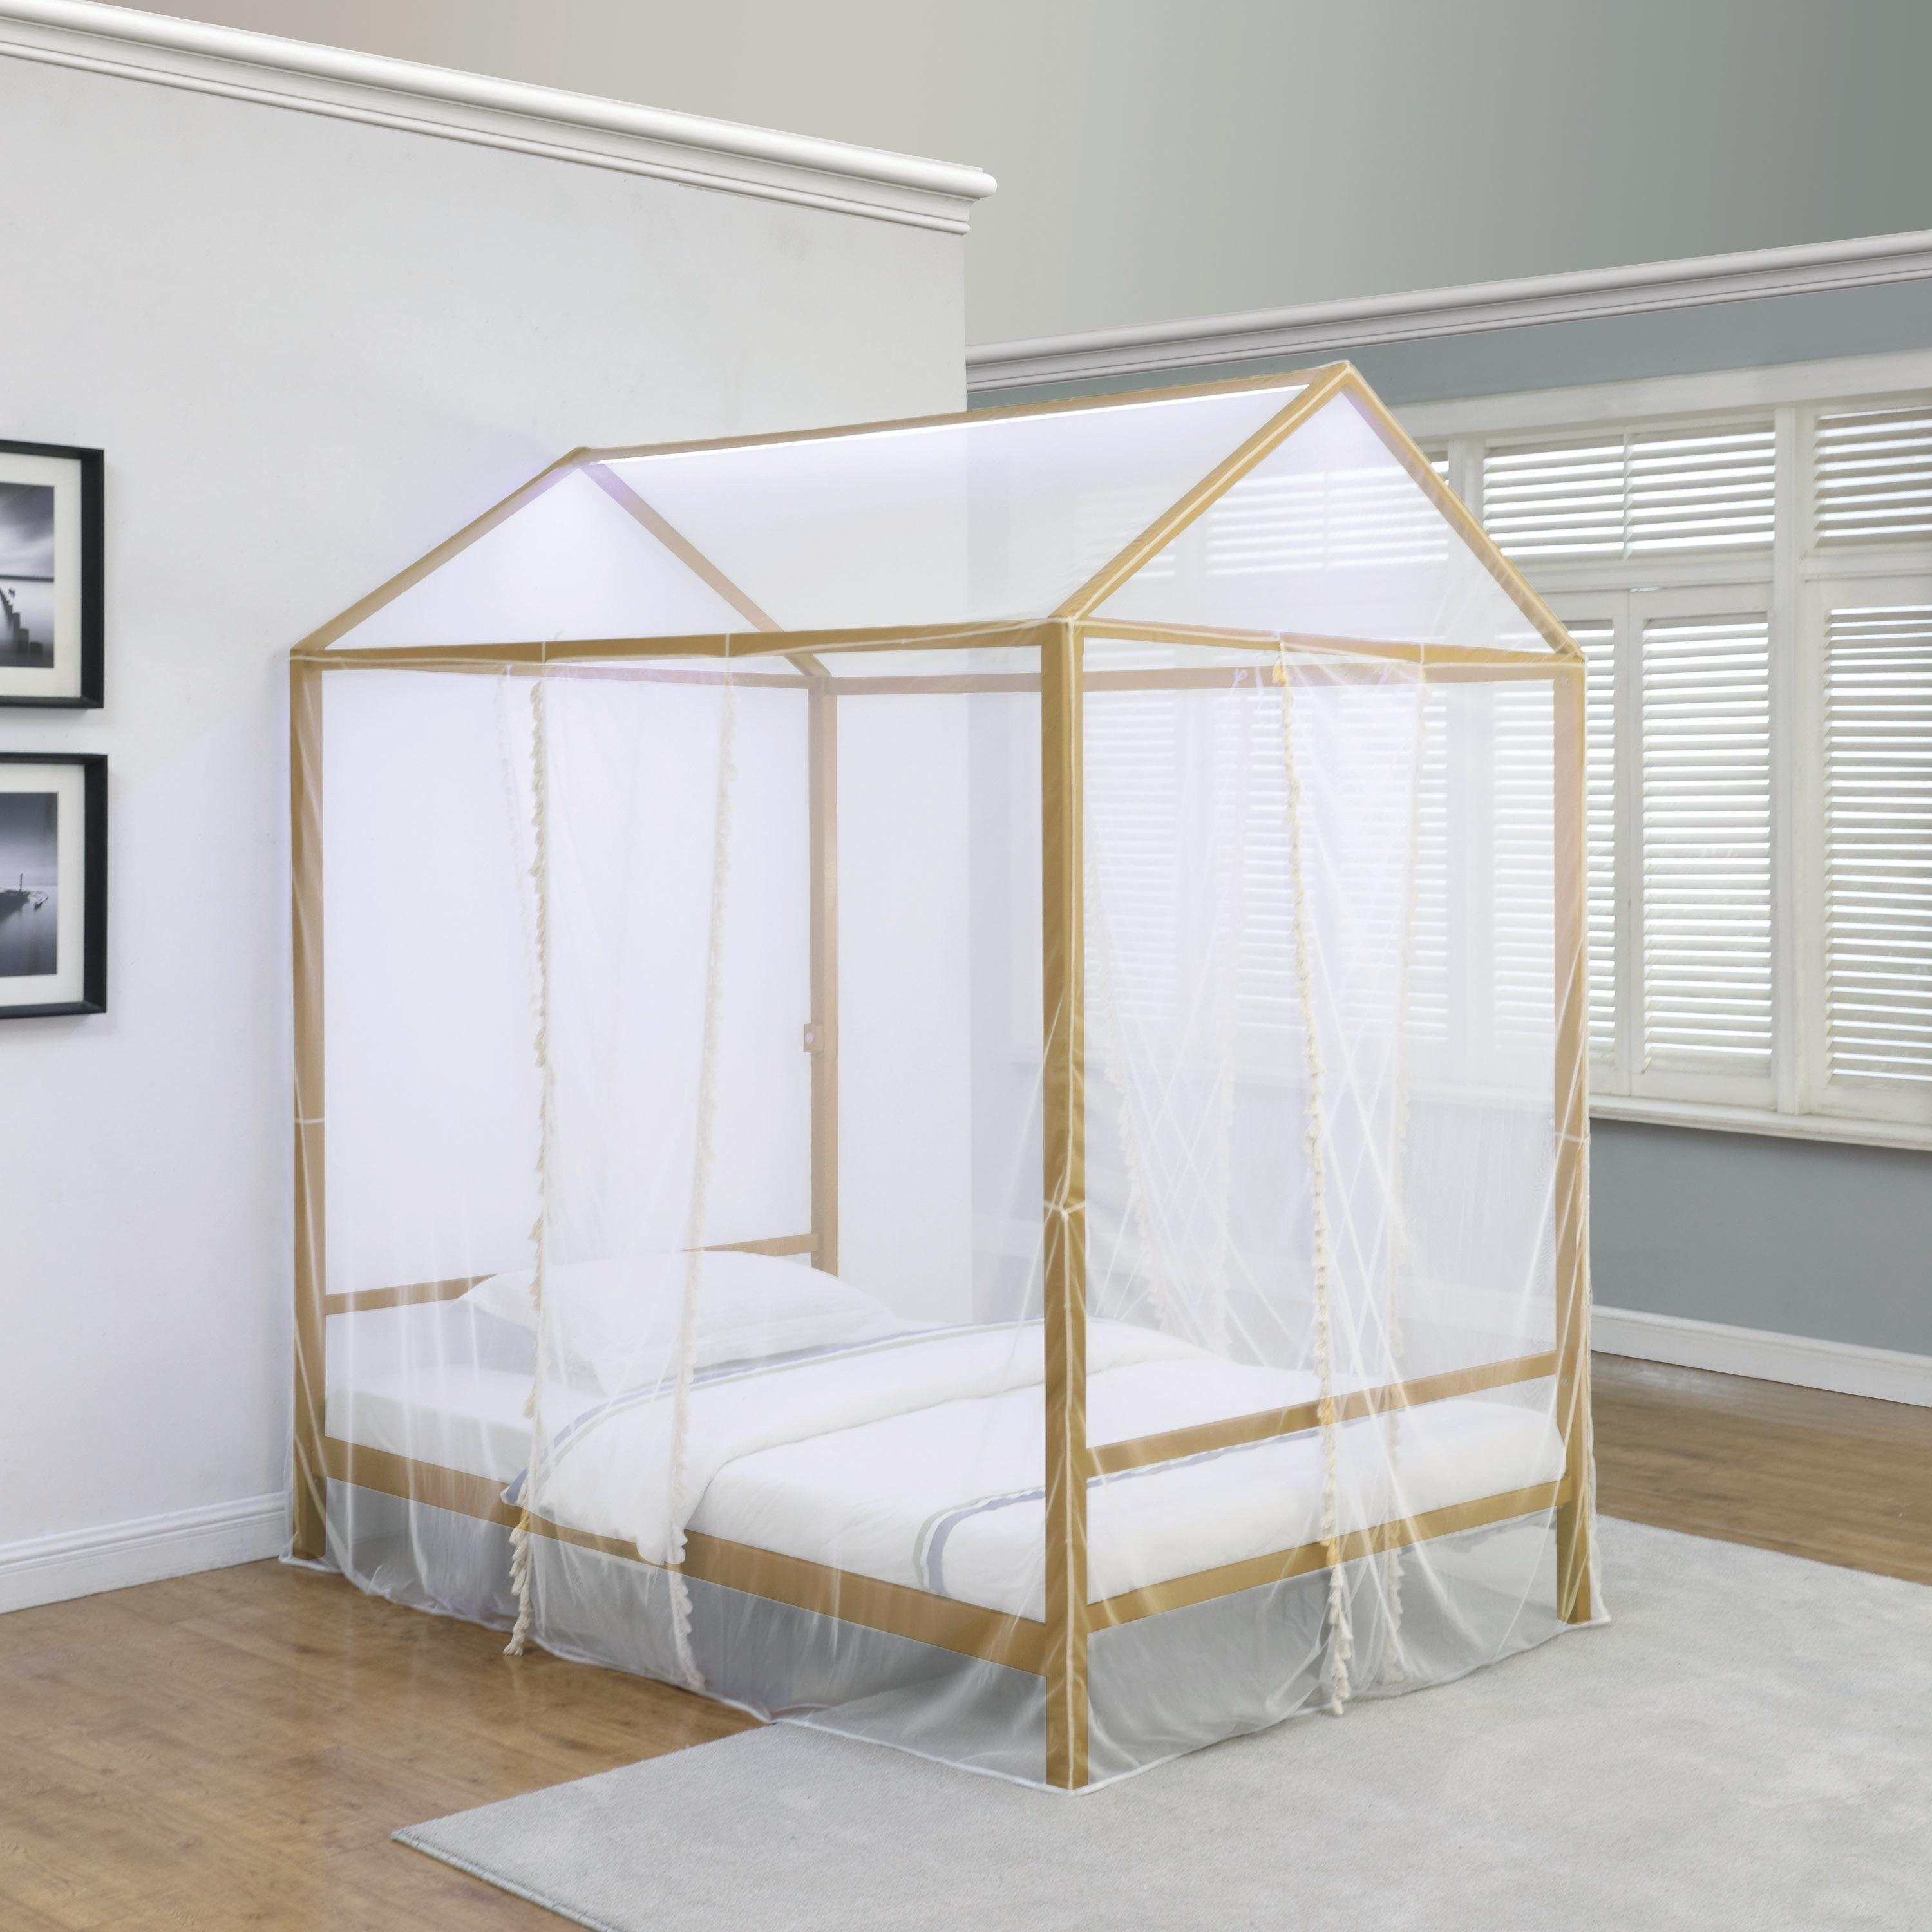 Shop Black Friday Deals On Taylor Olive Daffodil Gold White Sheer Canopy Bed With Led Lighting Overstock 29176937